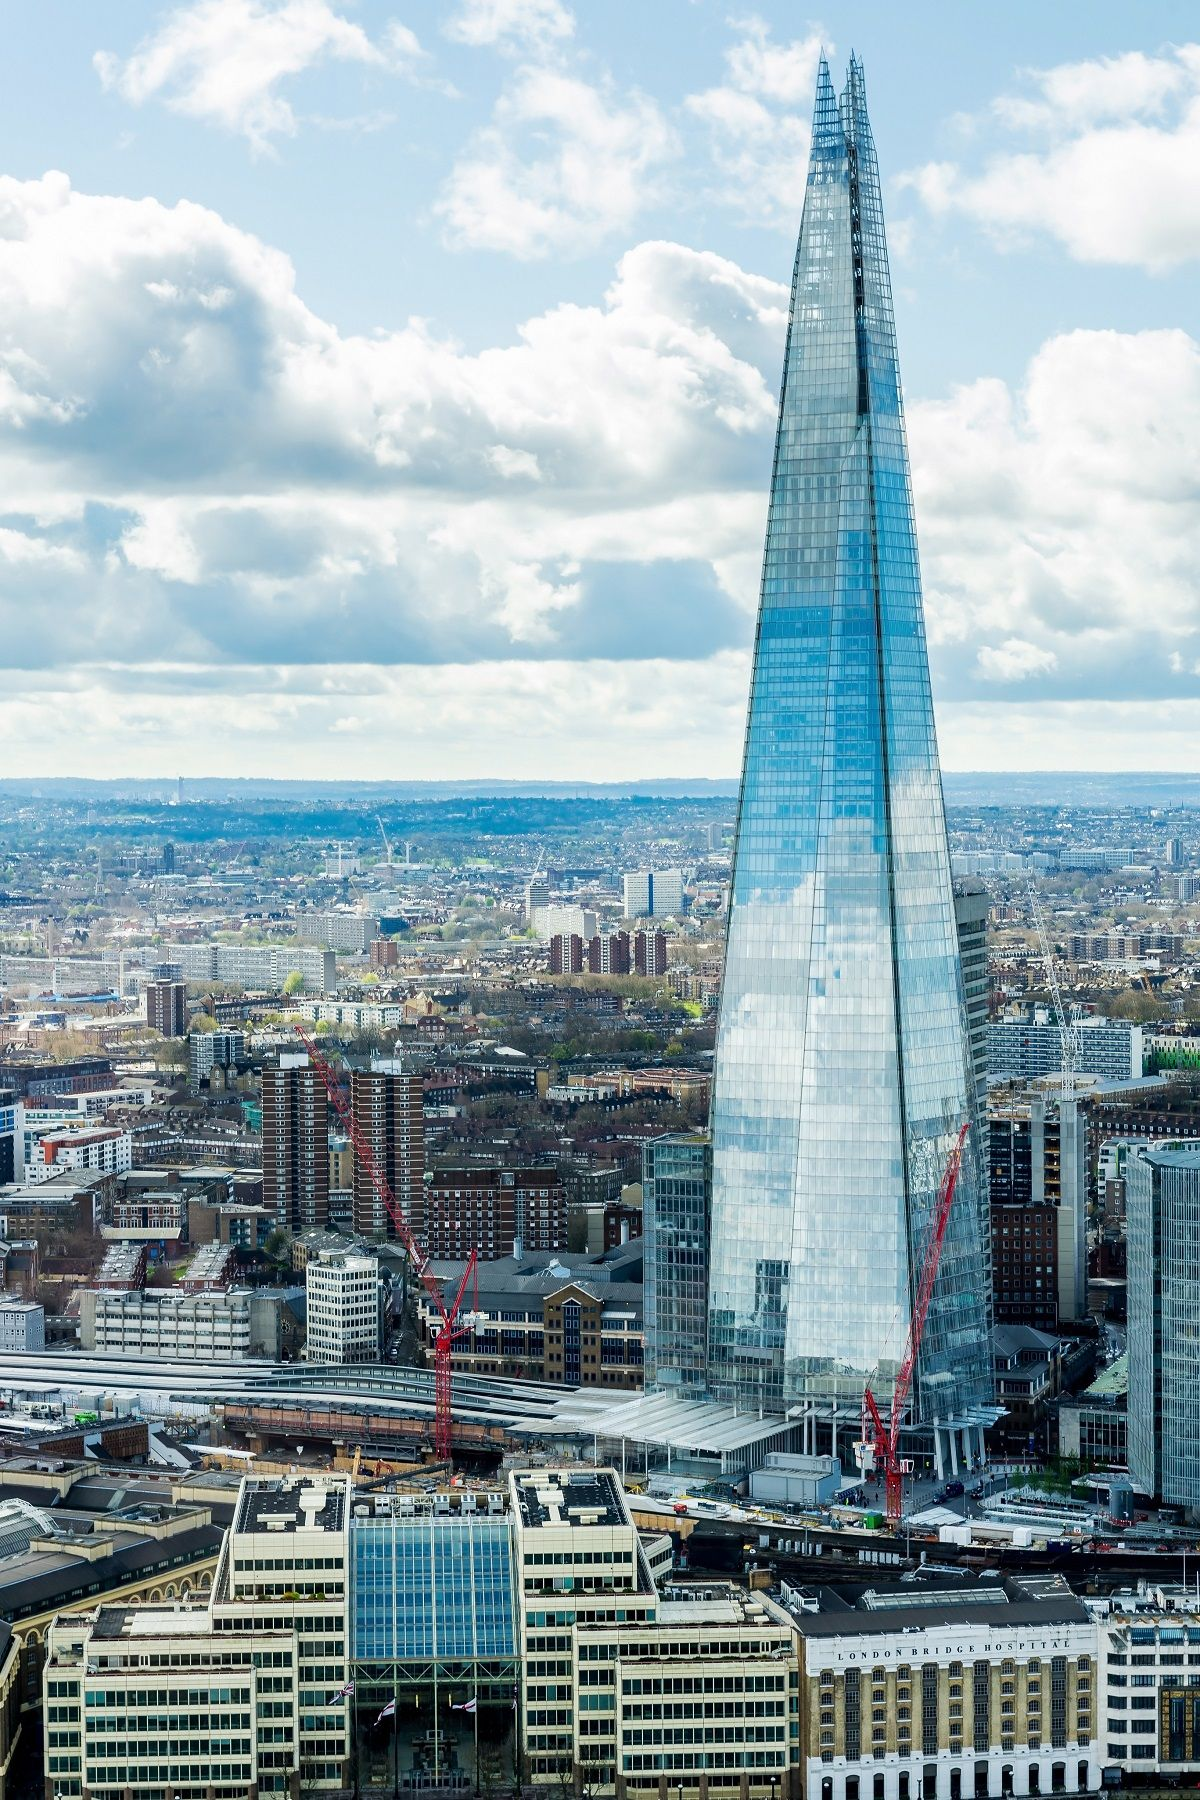 The 10 Best London Shard Tours & Tickets 2021   Viator   London  attractions, London architecture, London